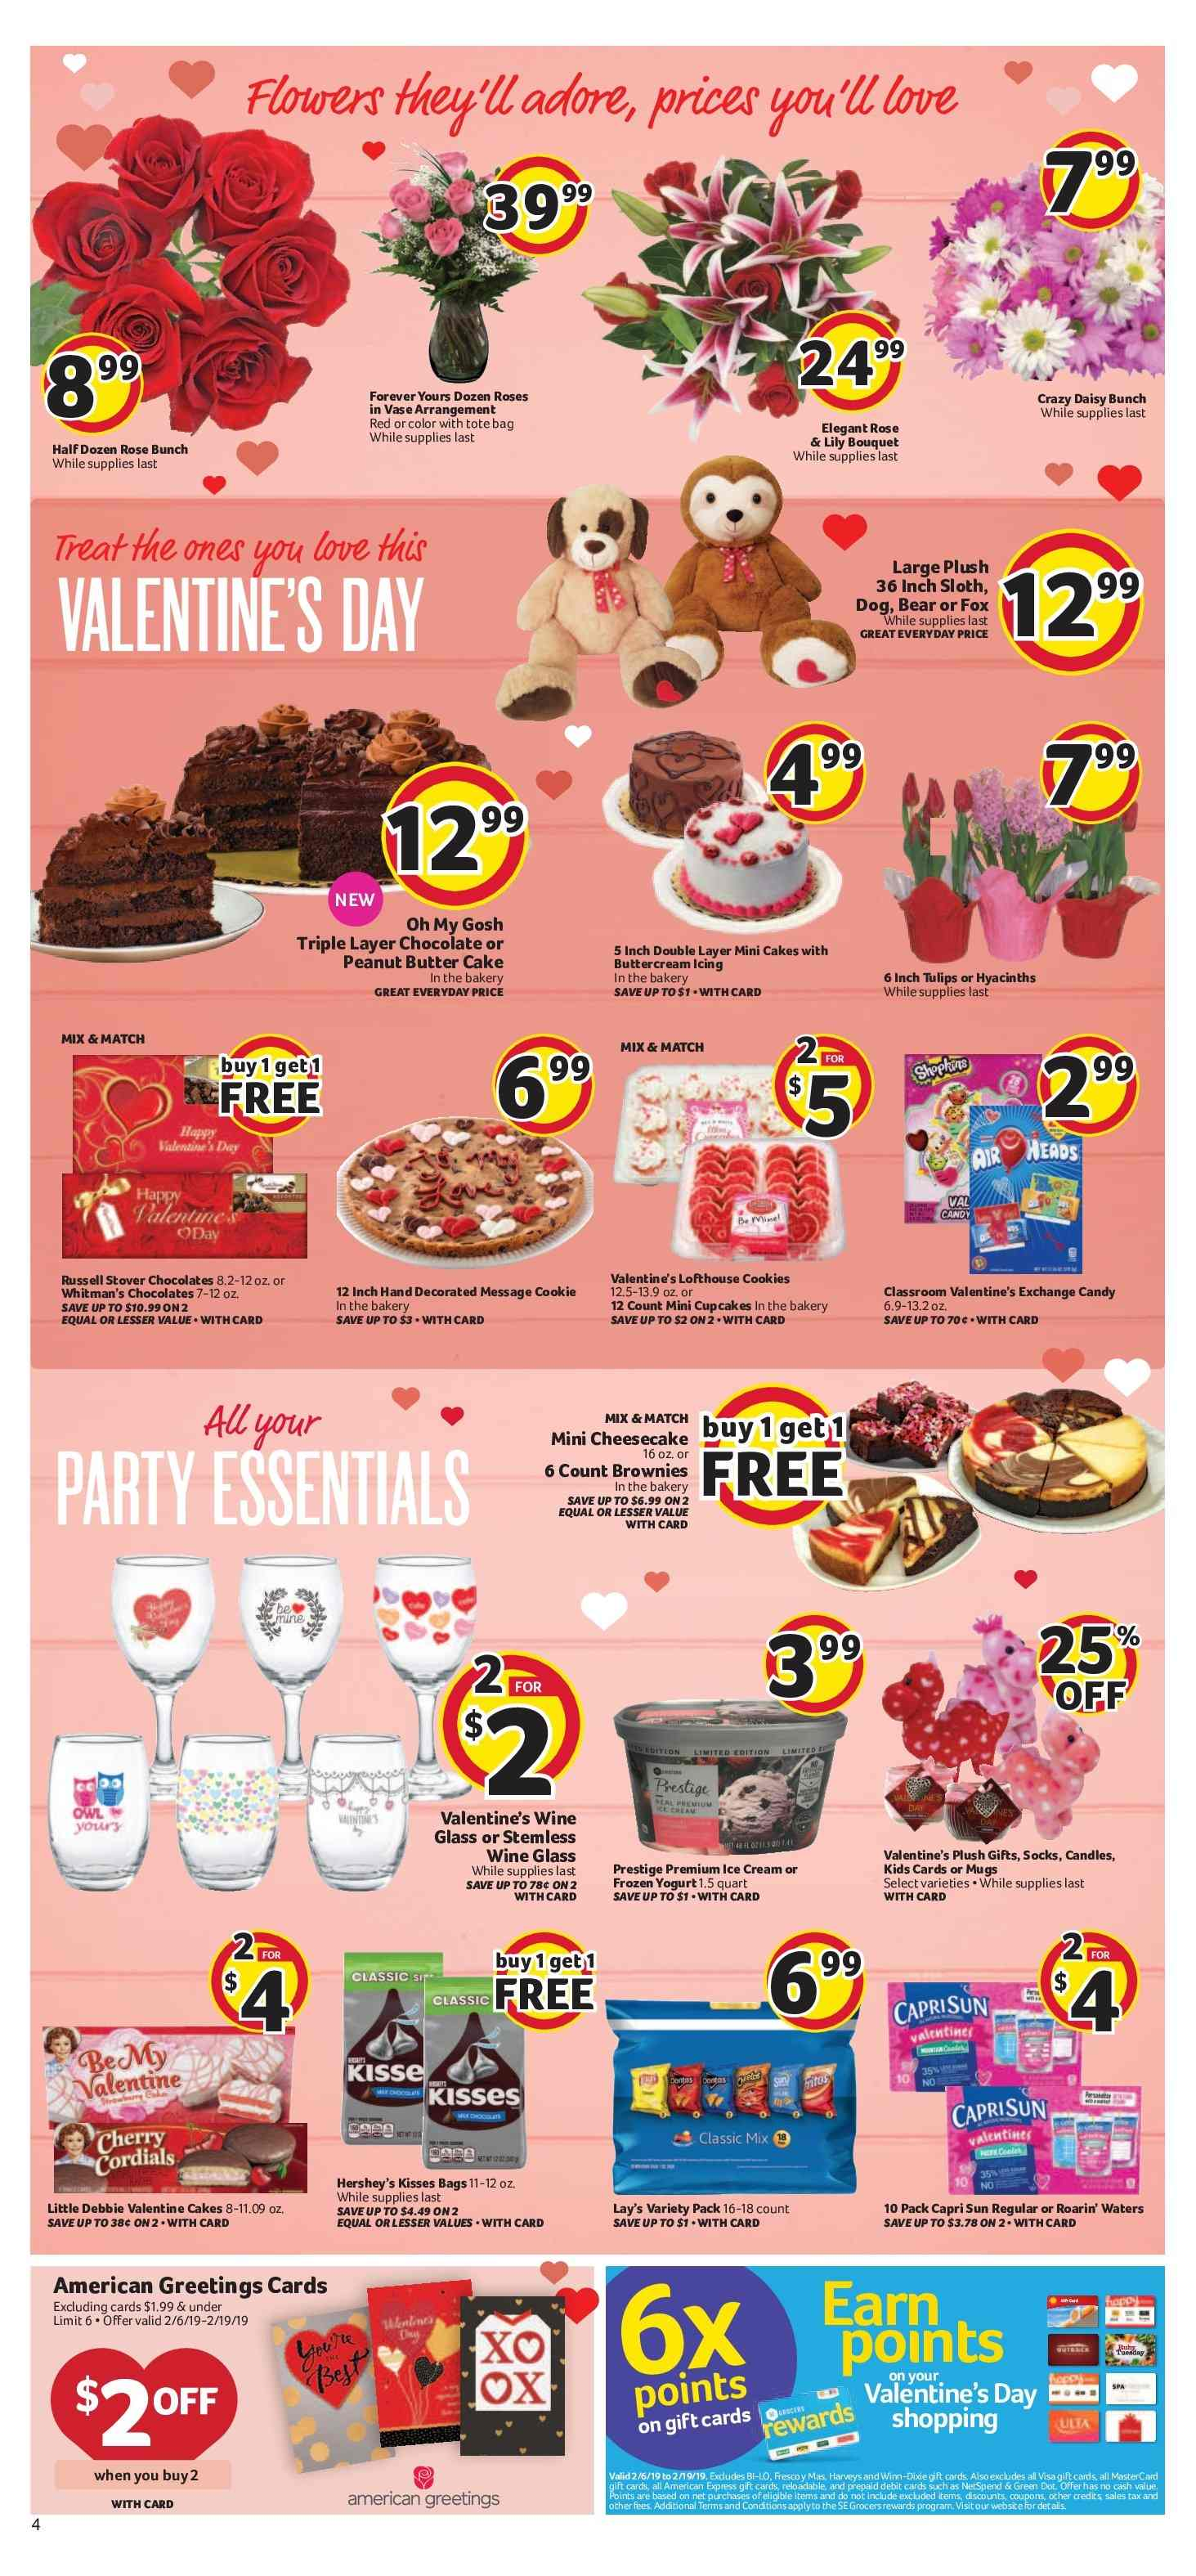 BI-LO Flyer - 02.06.2019 - 02.12.2019 - Sales products - bag, butter, candle, capri sun, cookies, forever, frozen, socks, wine glass, ice cream, peanut butter, chocolate, cheesecake, cake, candy, roses, tote, lay's, air heads, wine, valentine. Page 4.